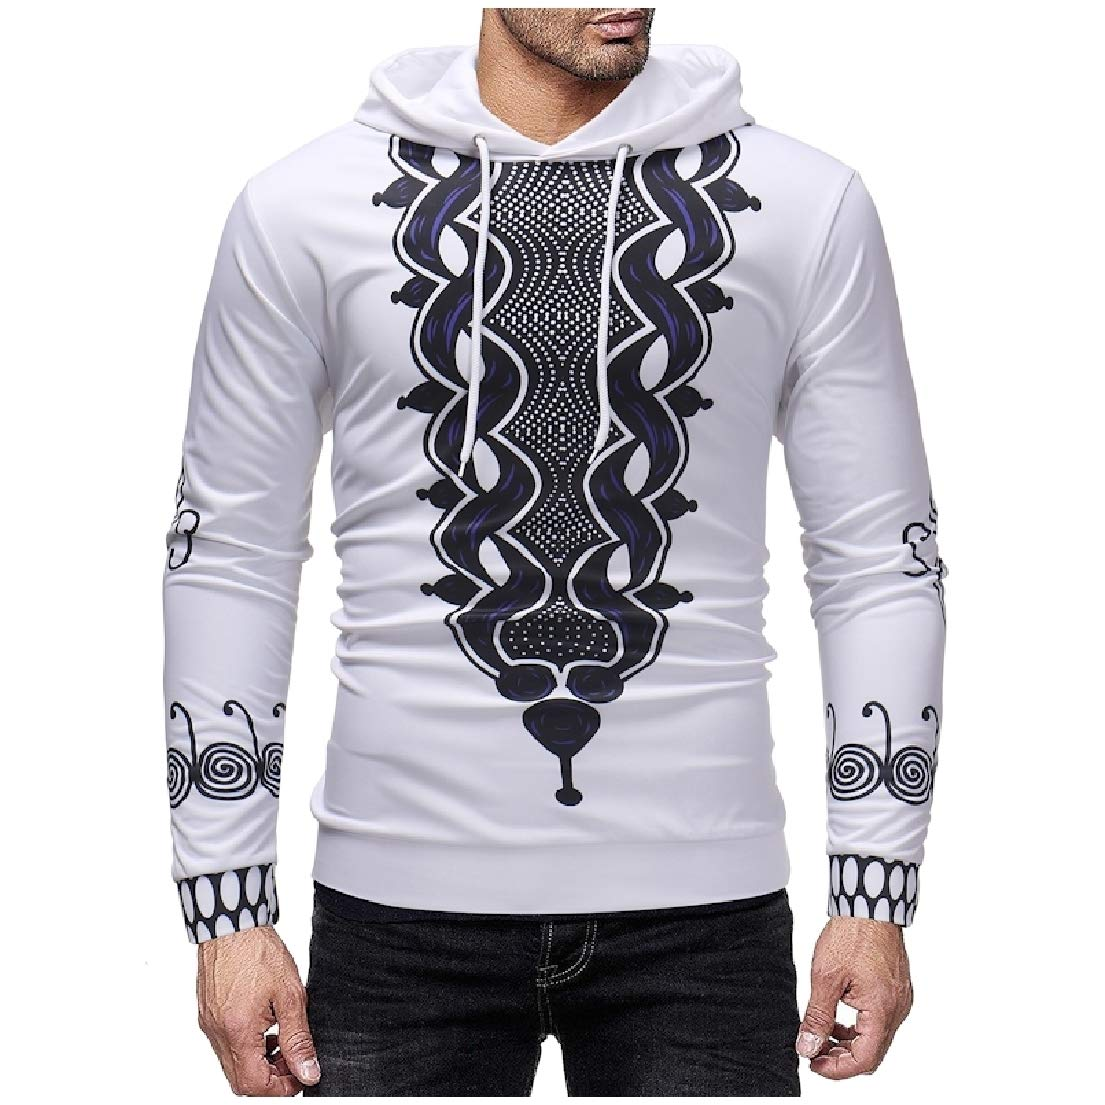 Vska Mens Digital Printed Plus Size Hooded Hoodie Shirt Top